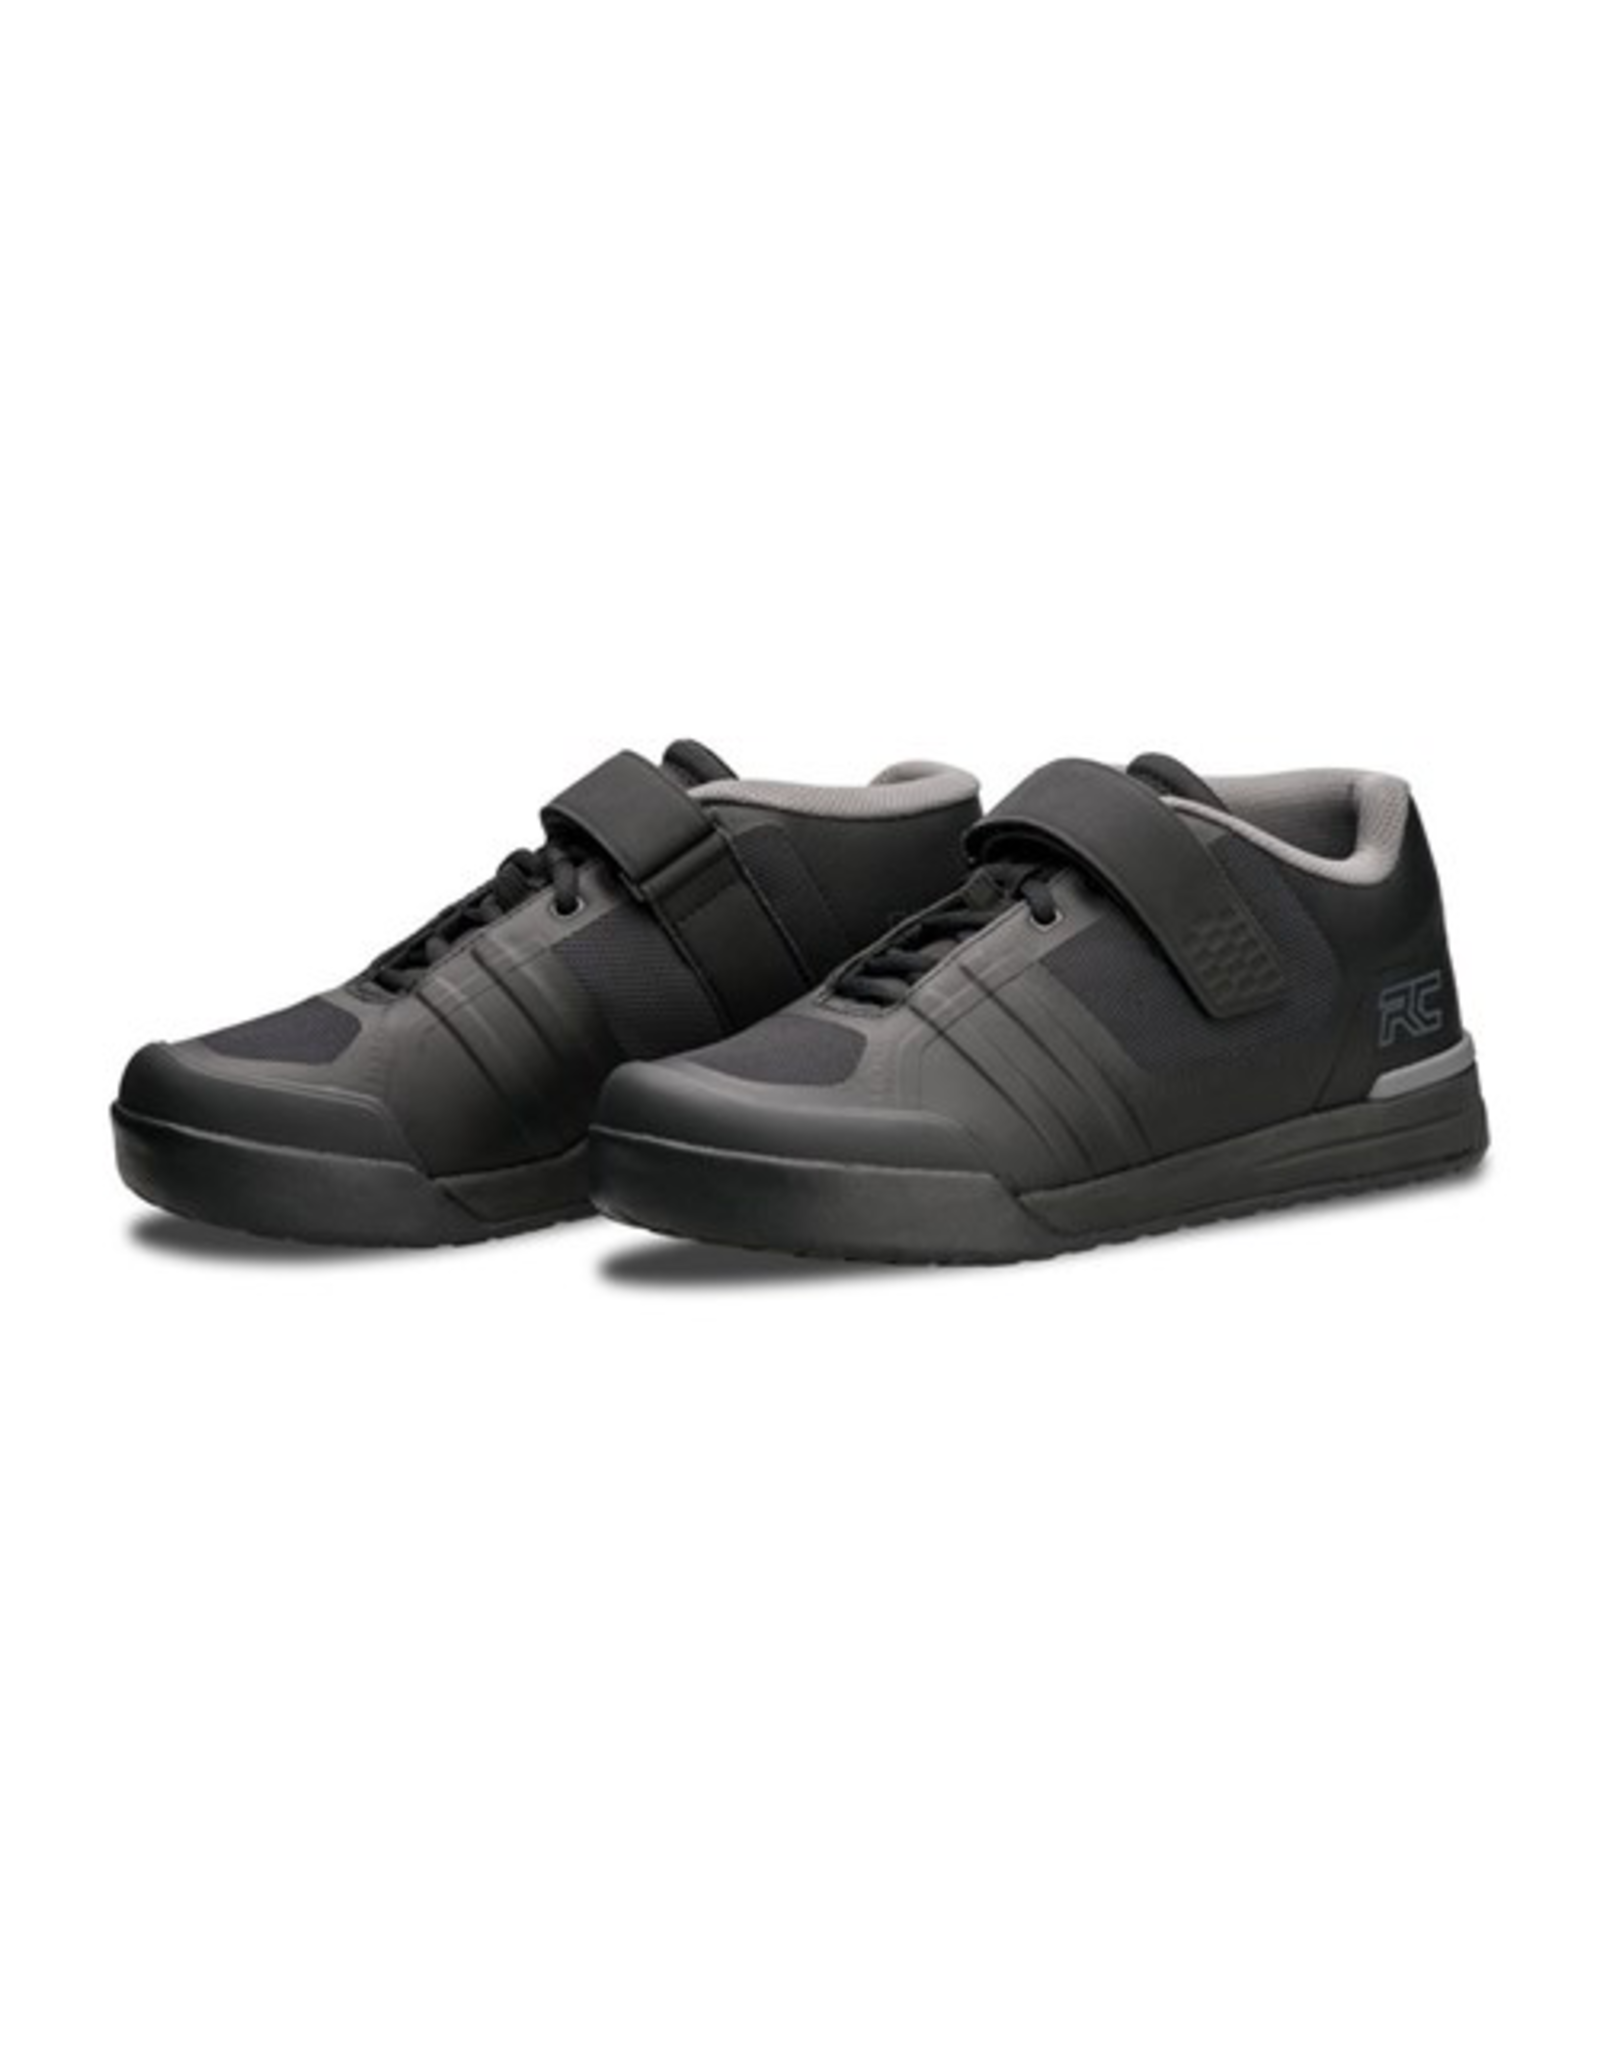 RIDE CONCEPTS SHOES RIDE CONCEPTS TRANSITION CLIPLESS